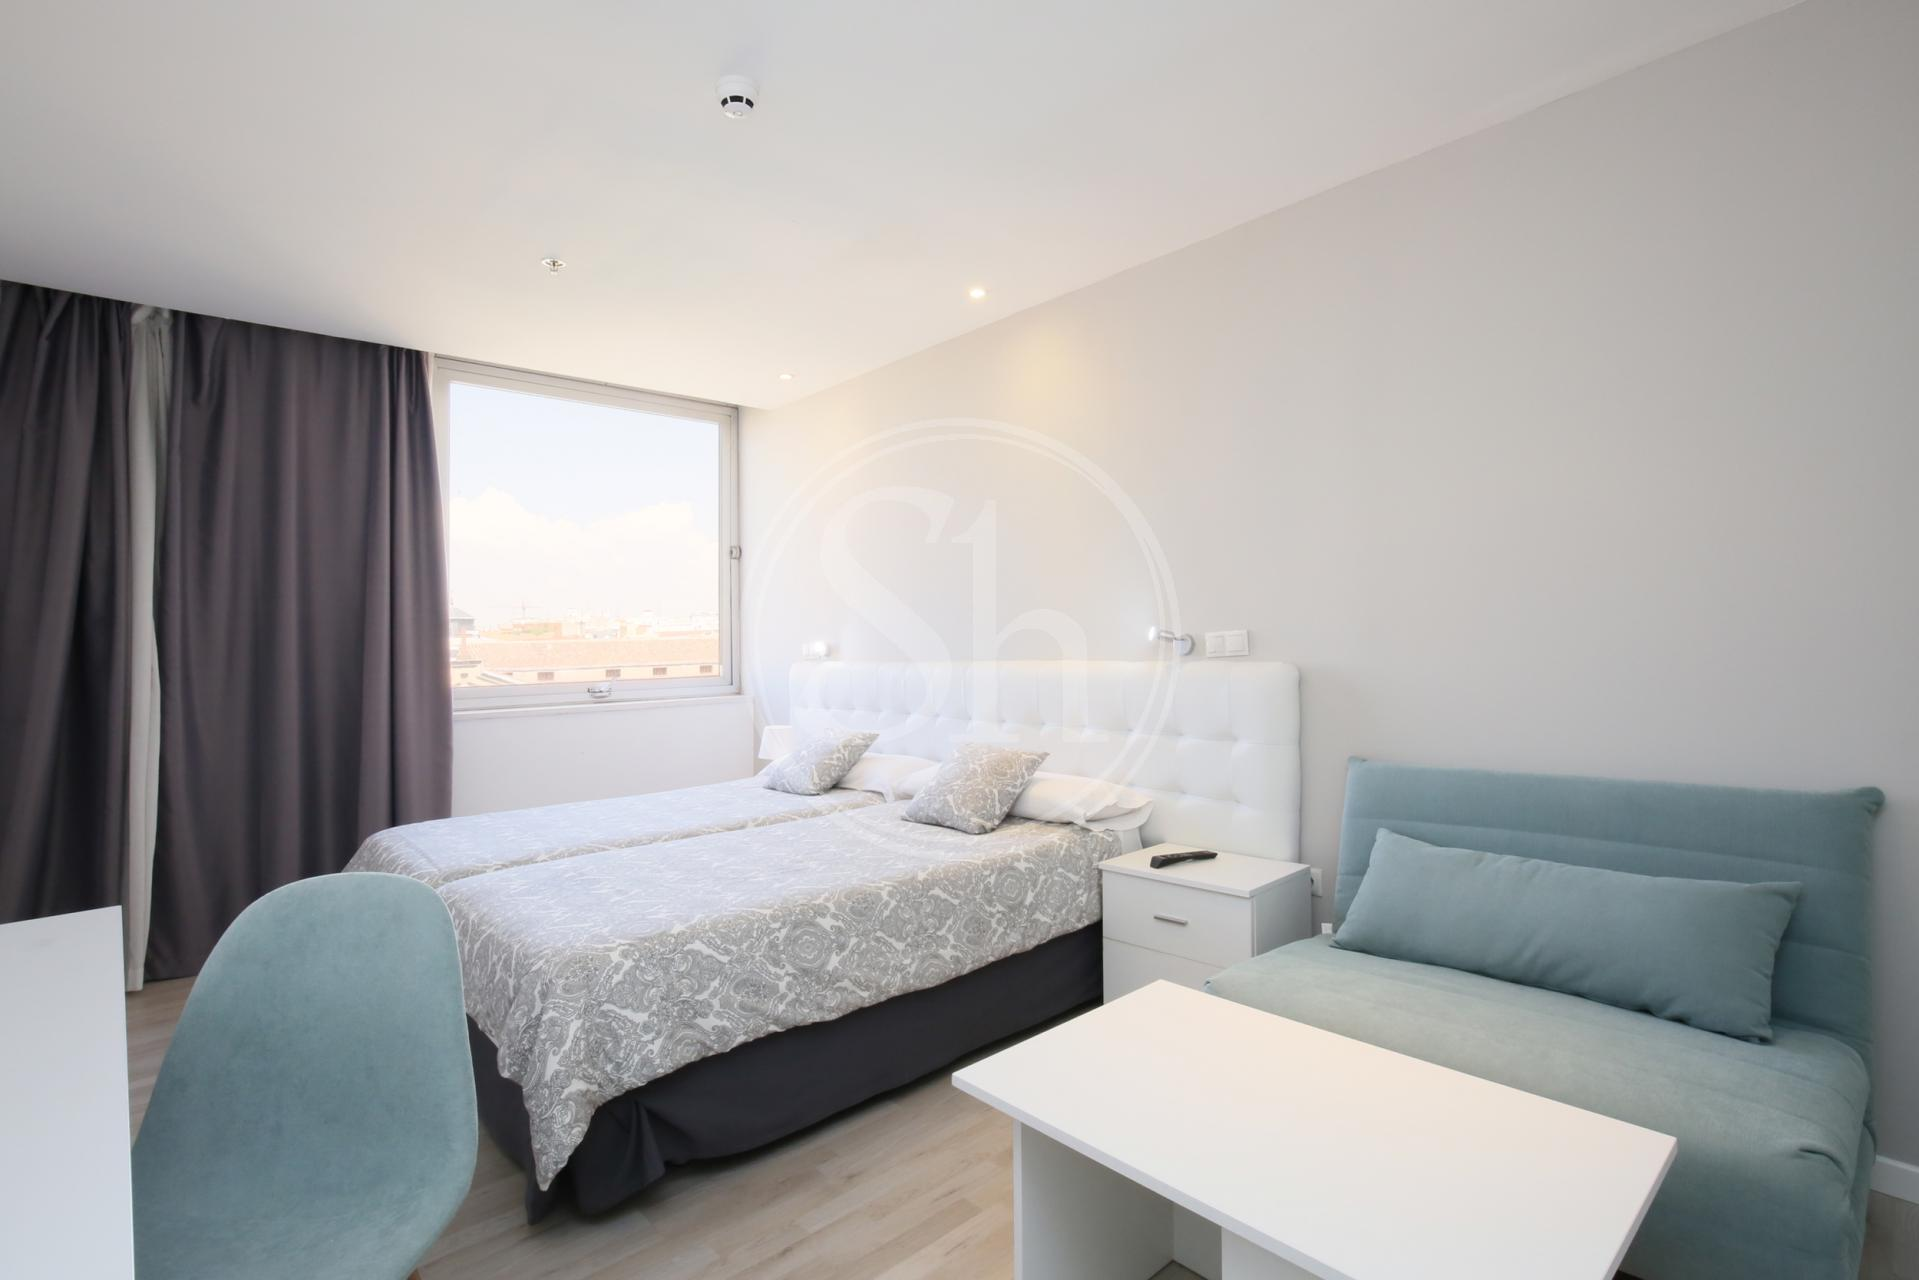 Studio for Rent in Madrid Almagro - Alonso Martinez - Todo Incluido